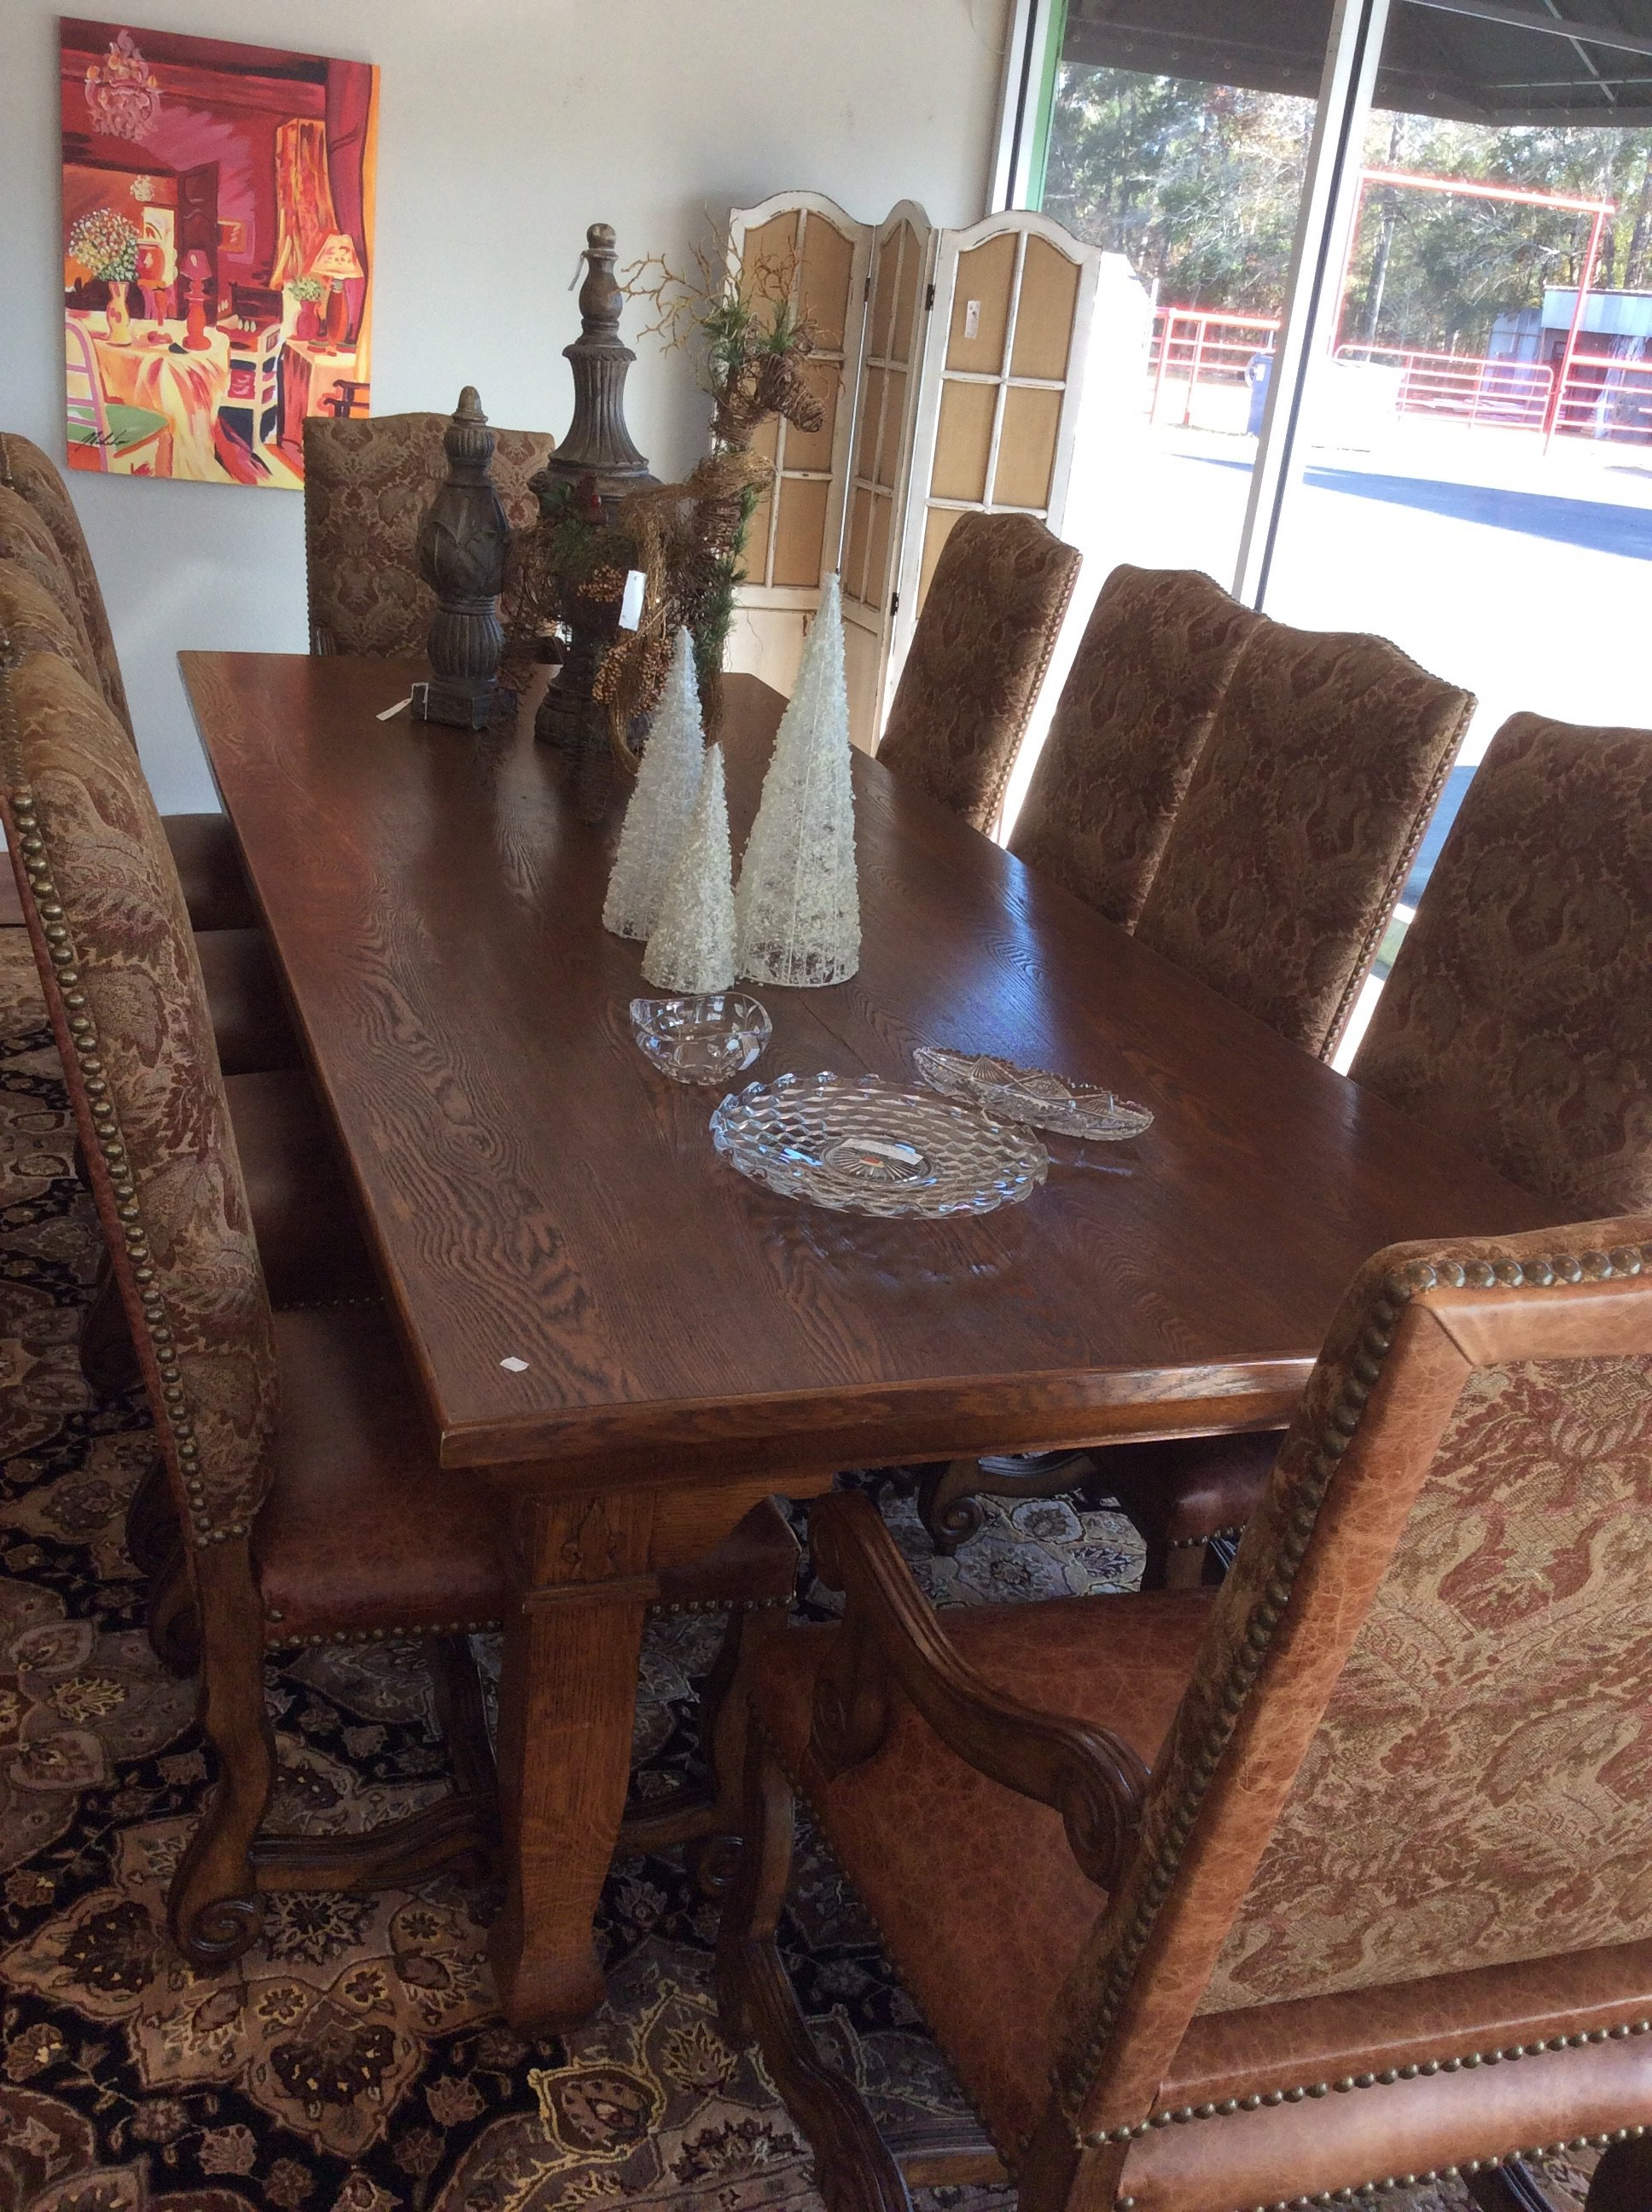 Now this is a truly stunning dining room set! The solid oak table is extra long (10 ft) and extra wide (more than 4 ft). The ETHAN ALLEN chairs are in excellent condition and feature leather seats, upholstered backs and beautiful nailhead accents. GORGEOUS!